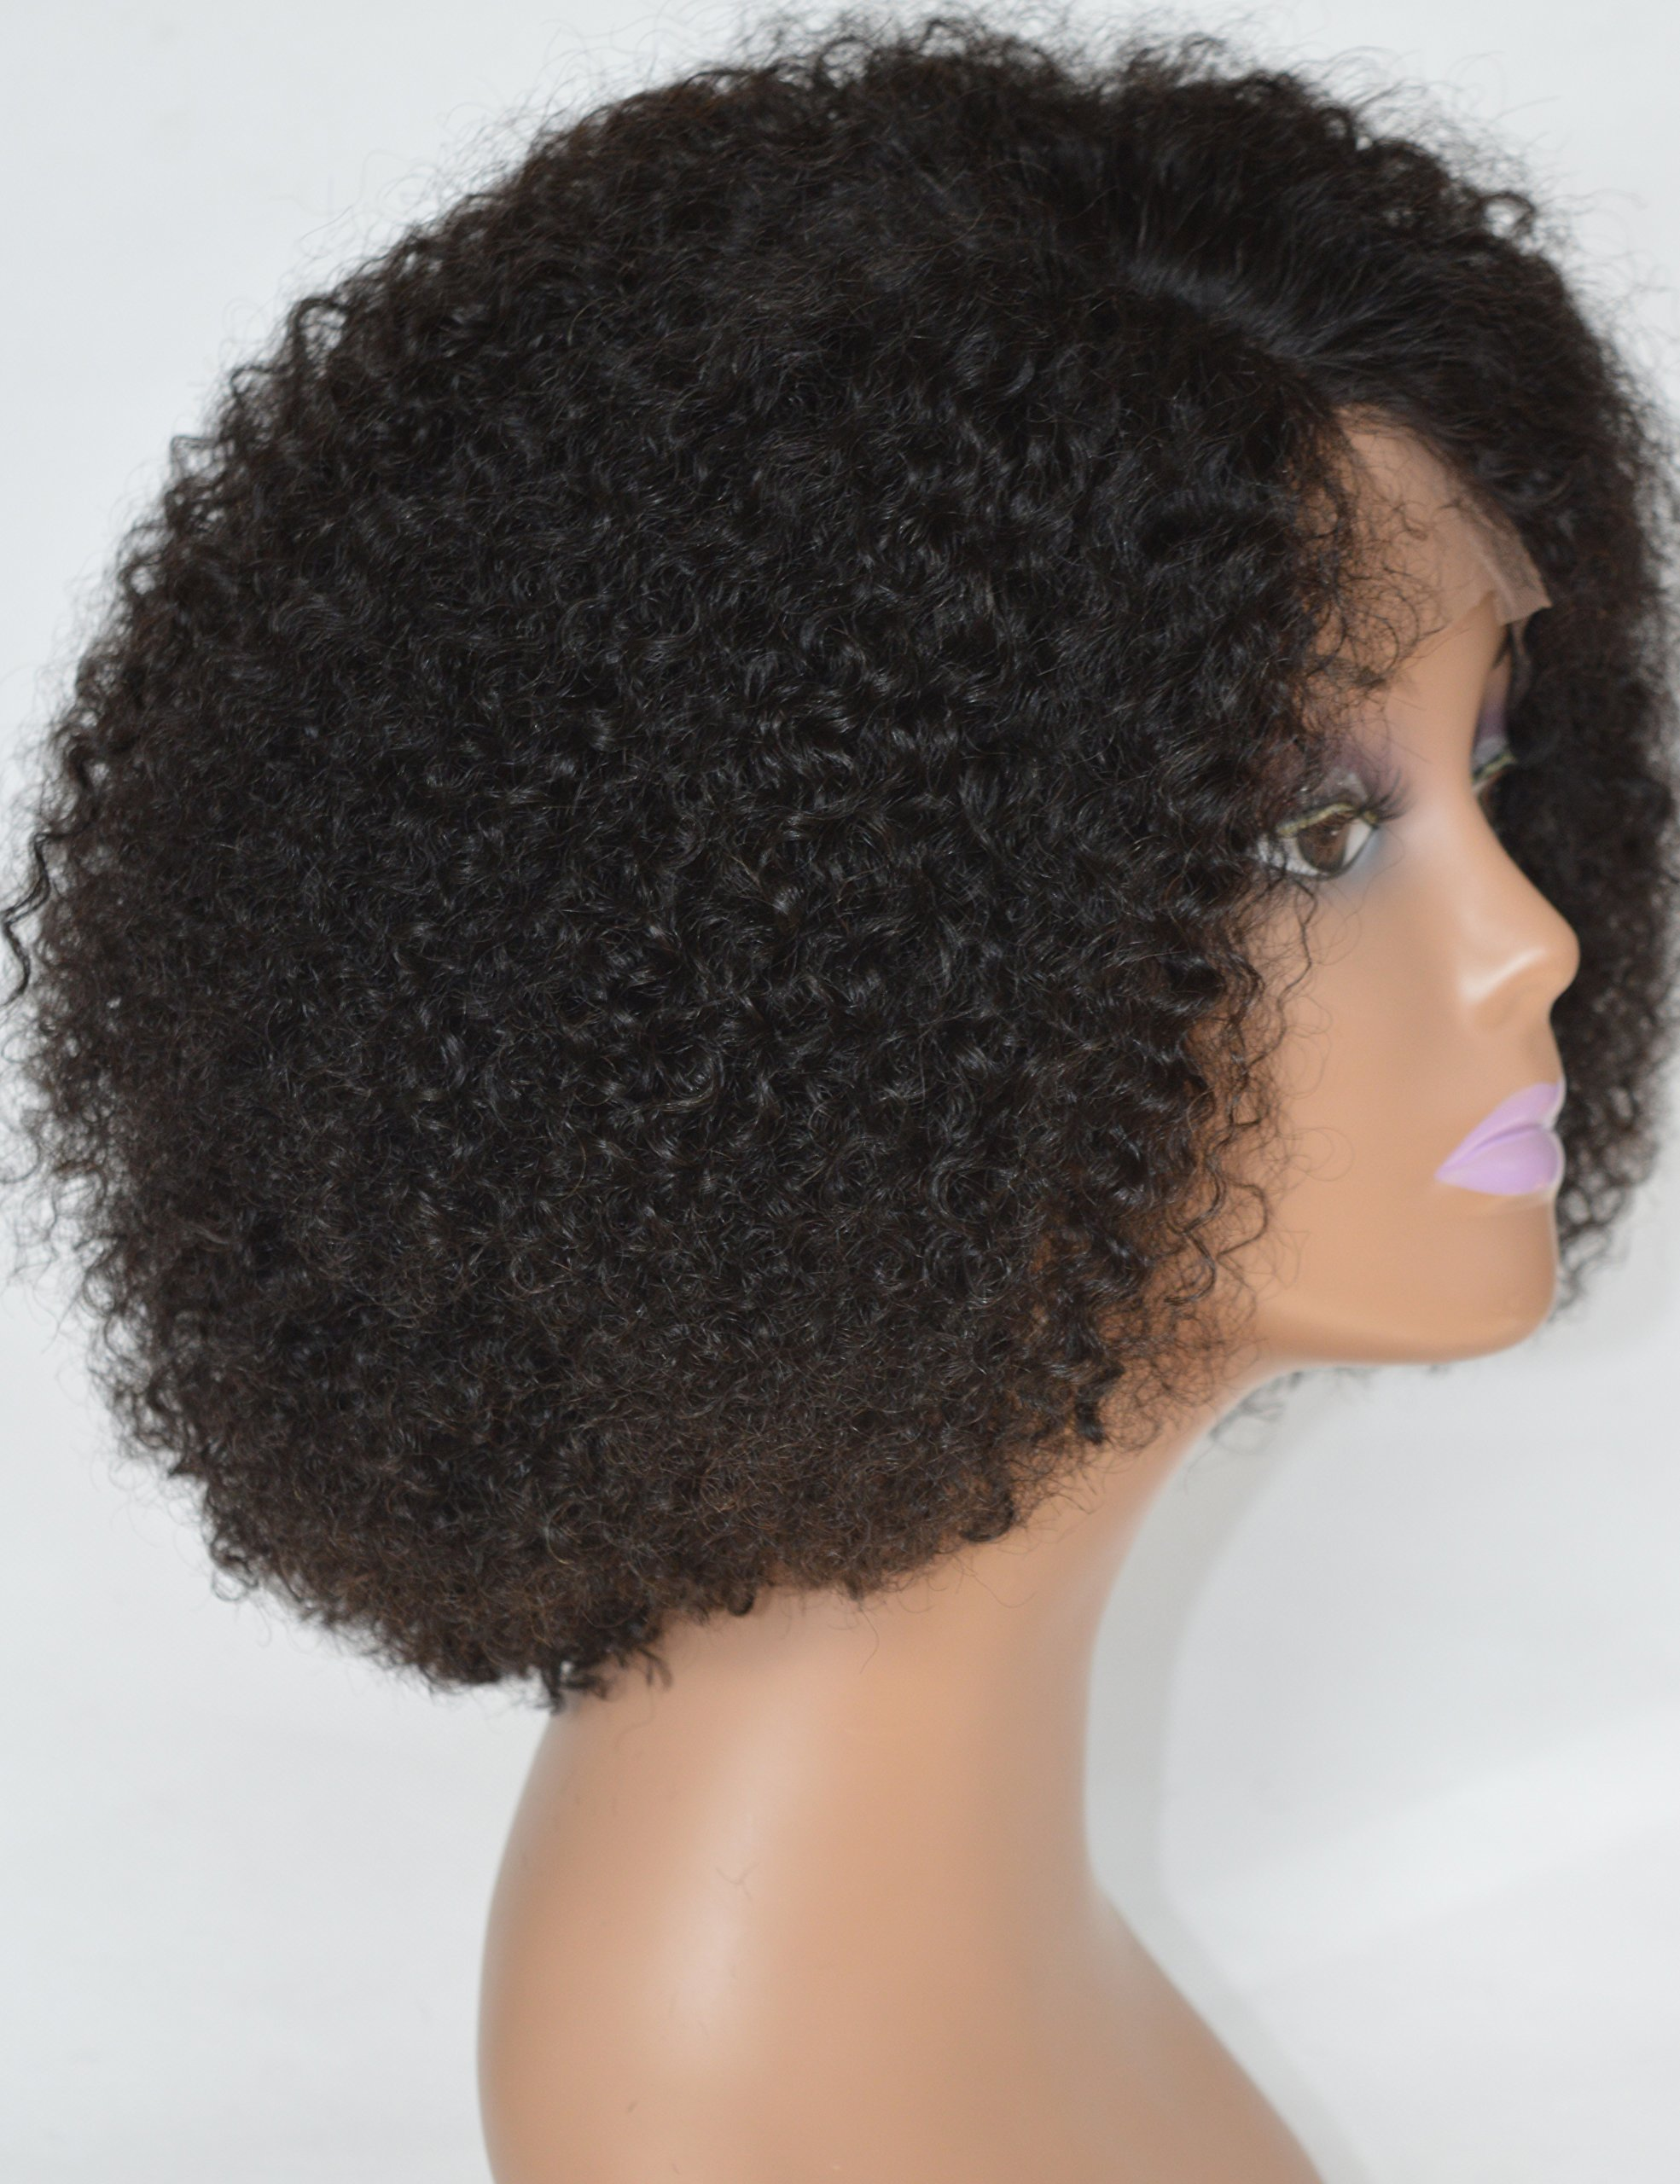 Chantiche Silk Top Invisible Deep Parting Short Kinky Curly Lace Wigs For Black Women Natural Looking Brazilian Remy Human Hair Wigs With Right Part 14 Inch #1B(GL-0103) by Chantiche Lace Wig (Image #9)